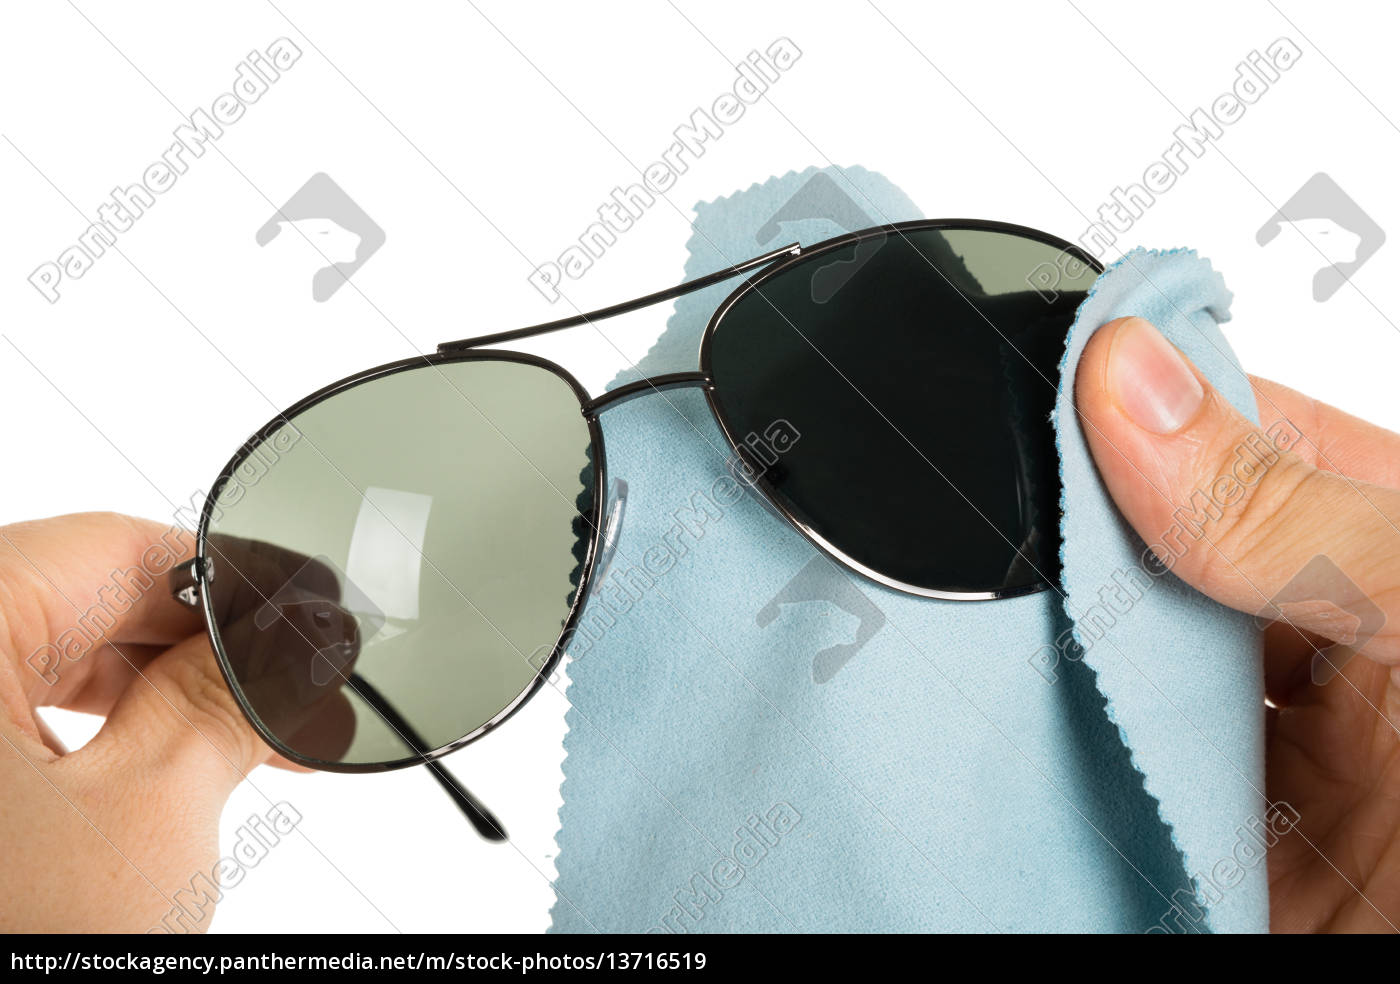 person, cleaning, sunglasses - 13716519